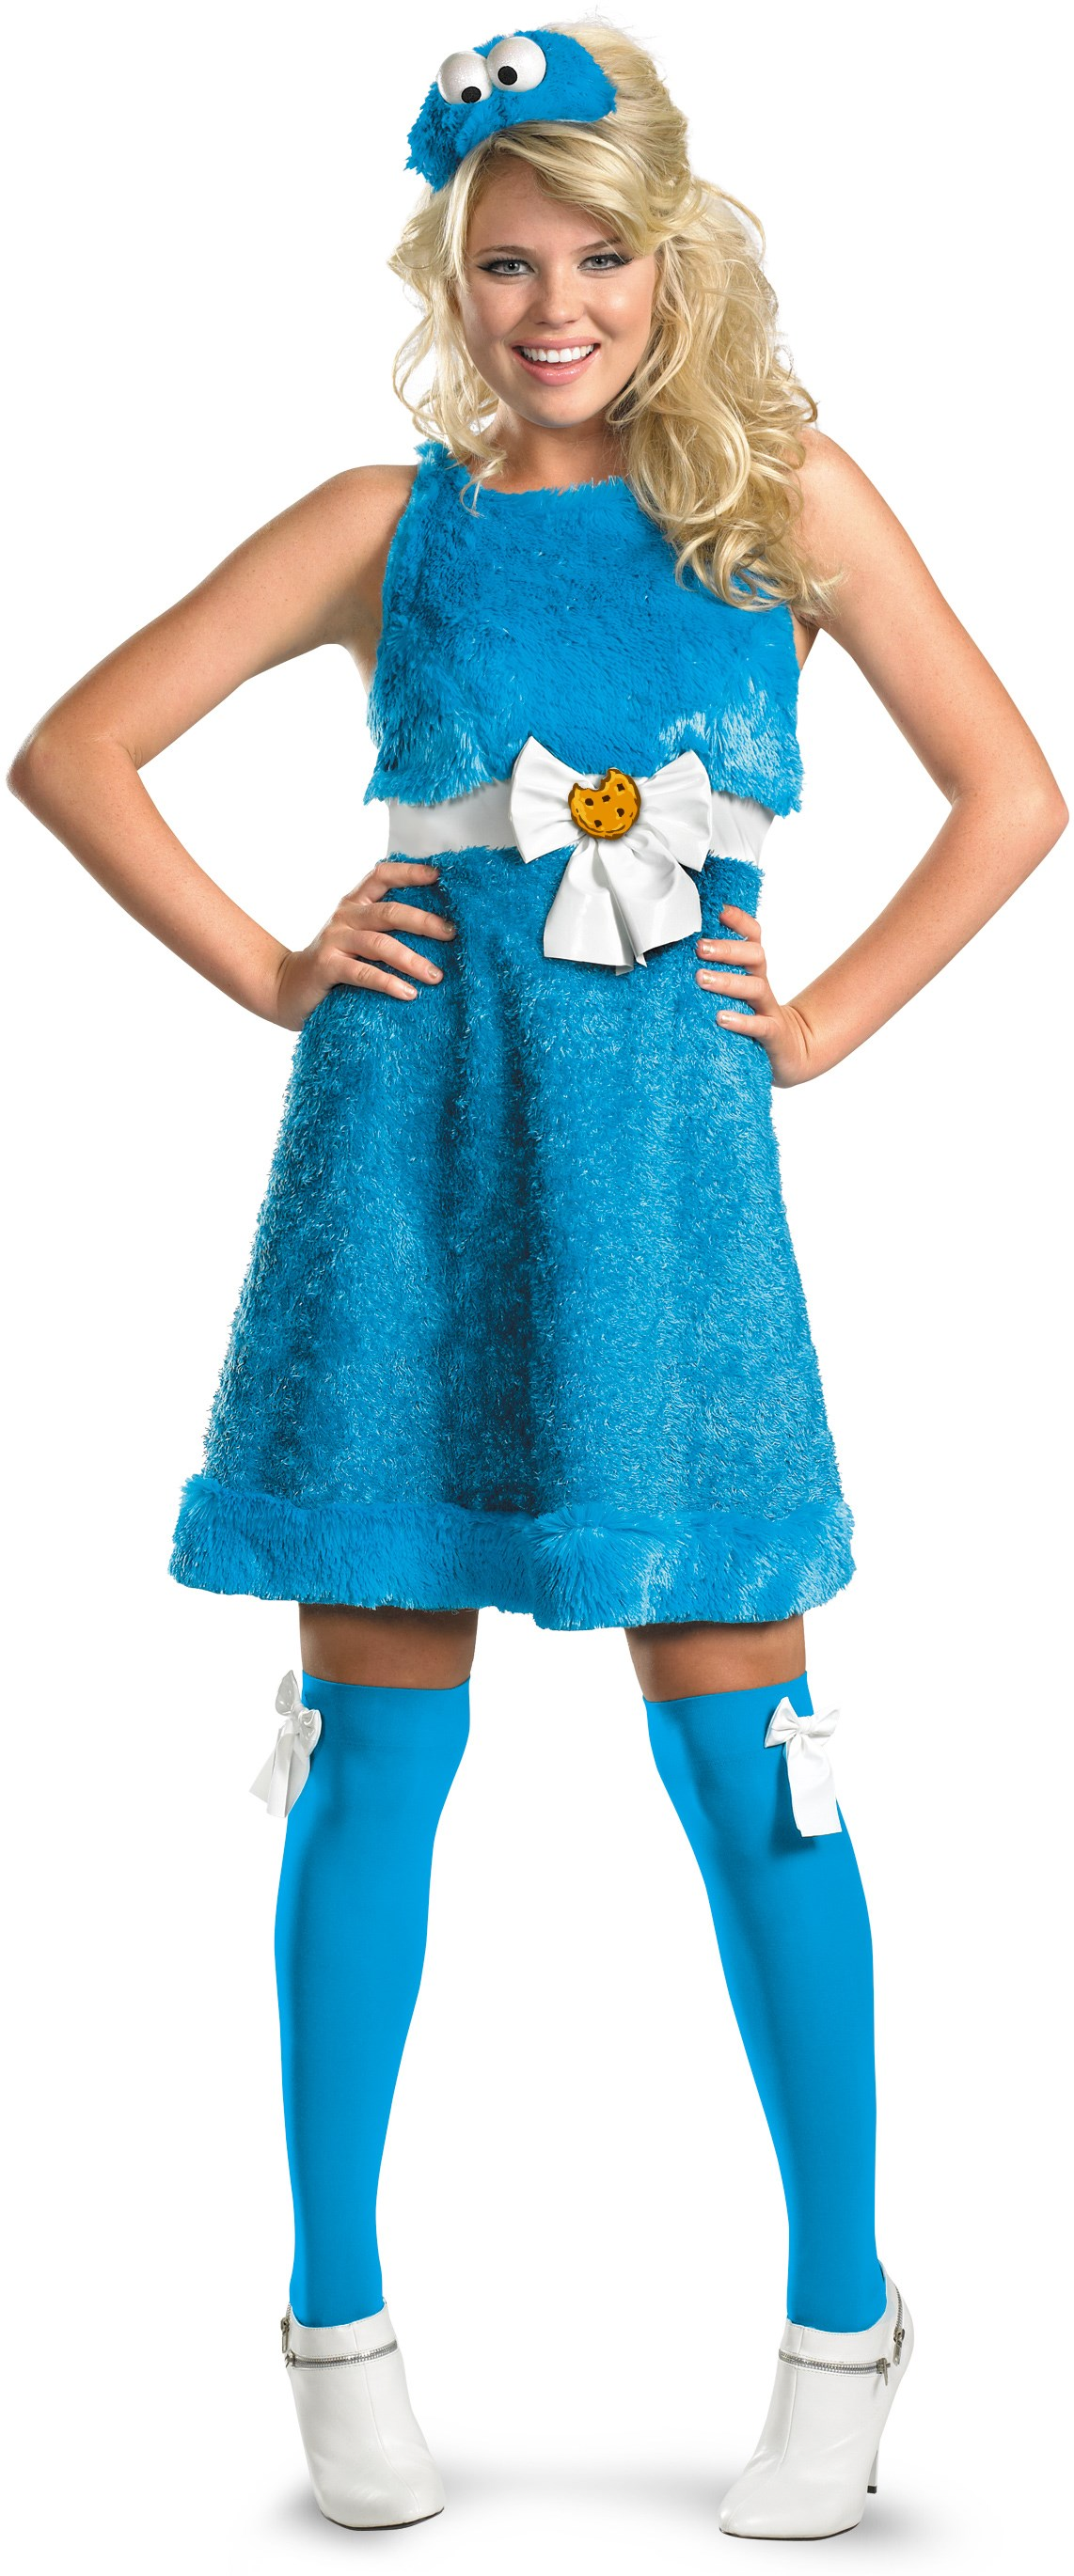 Sesame Street - Cookie Monster Sassy Female Adult Costume